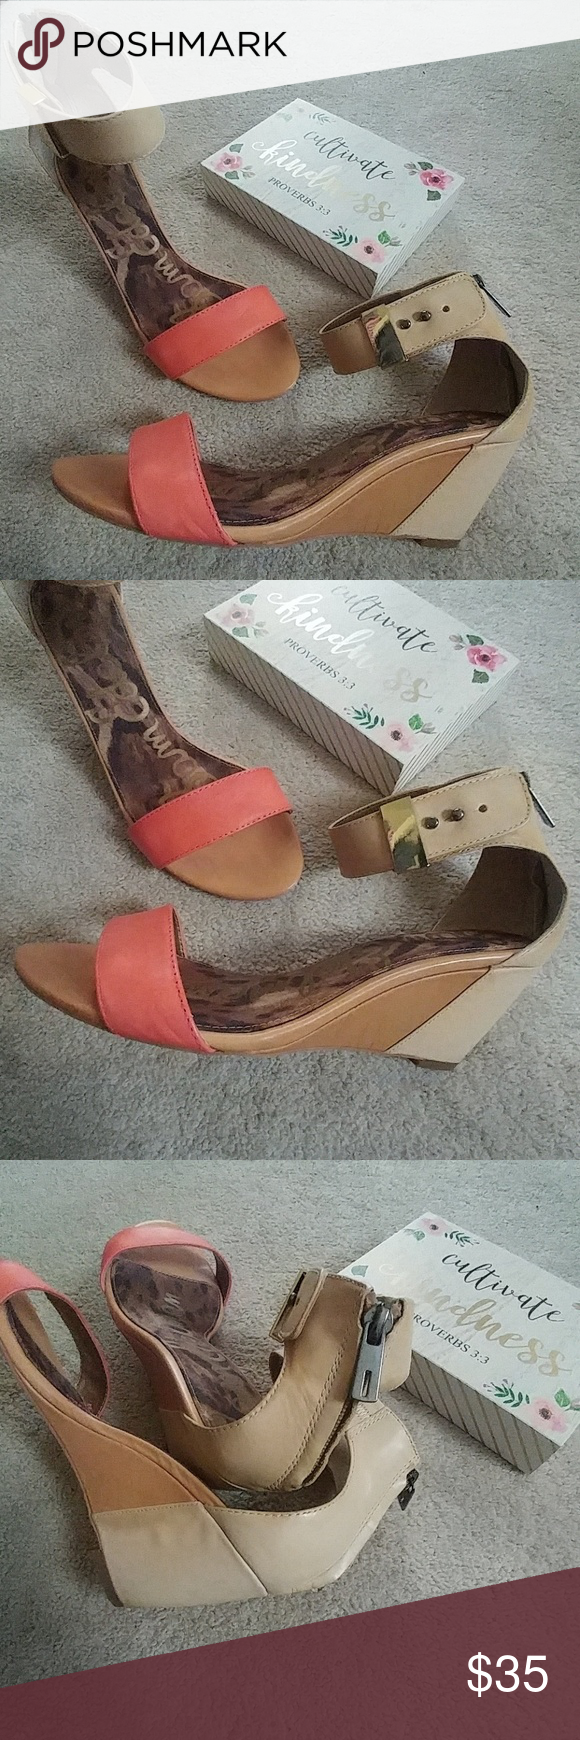 Sam Edelman Sophie Low Wedge Sandals These cowhide leather low wedge sandals features a back zip and button ankle closure. Covered wedge heel 2.5 inch heel Color is Persimmon/Natural Worn once but there's a few scuffs on the left shoe (see pics 5&6). Not noticeable on but wanted to point it out. Otherwise these are in pristine condition Sam Edelman Shoes Heels #lowwedgesandals Sam Edelman Sophie Low Wedge Sandals These cowhide leather low wedge sandals features a back zip and button ankle closur #lowwedgesandals